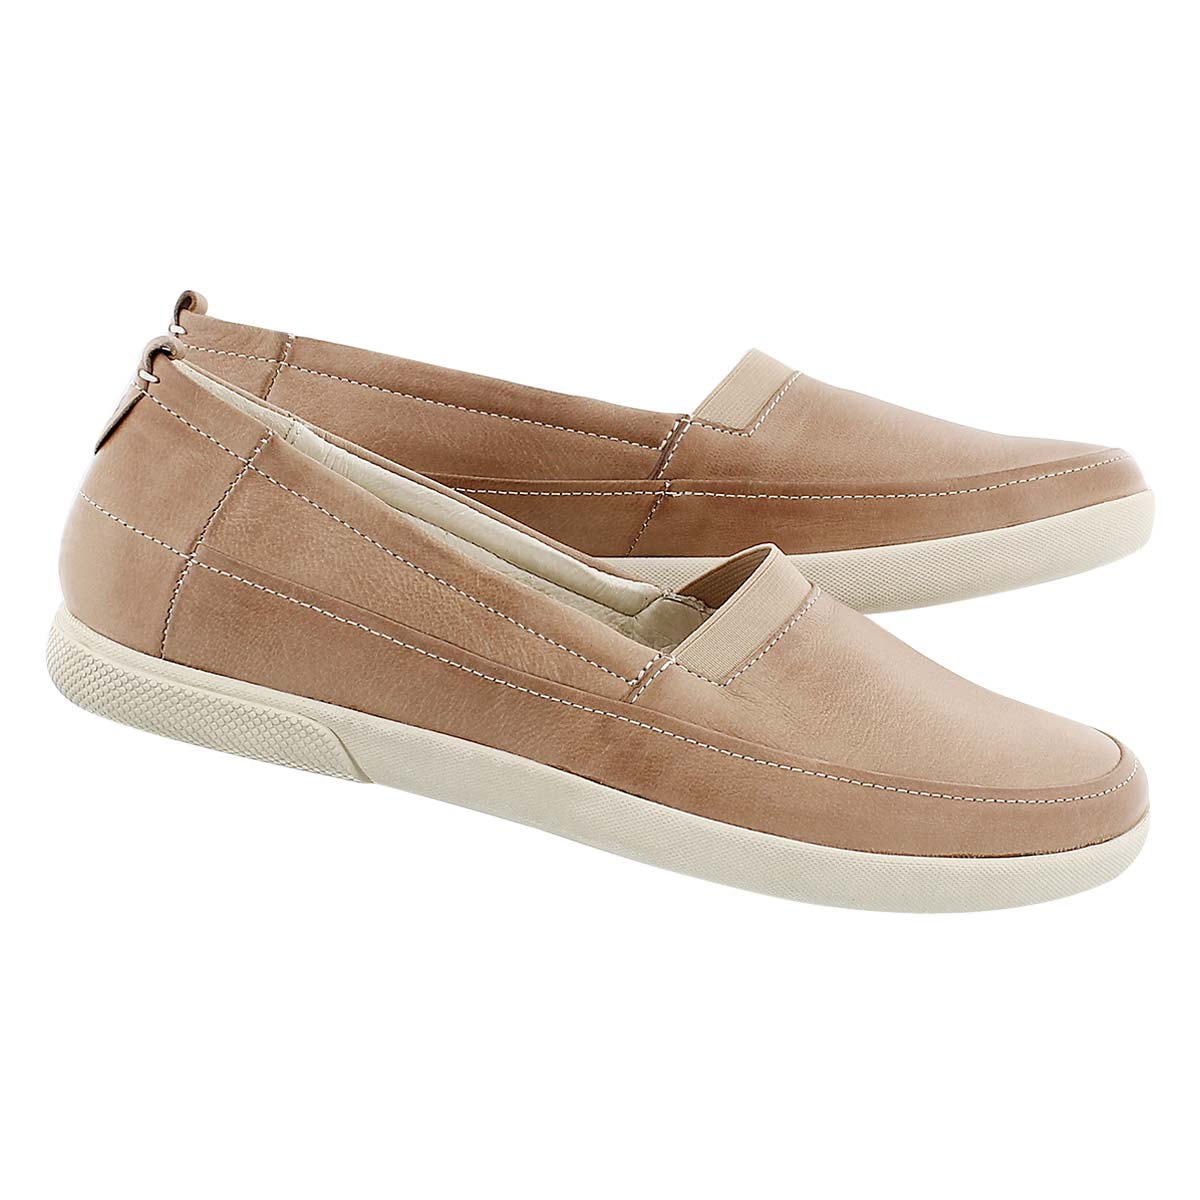 Lds Ciara 11 beige slip on casual shoe